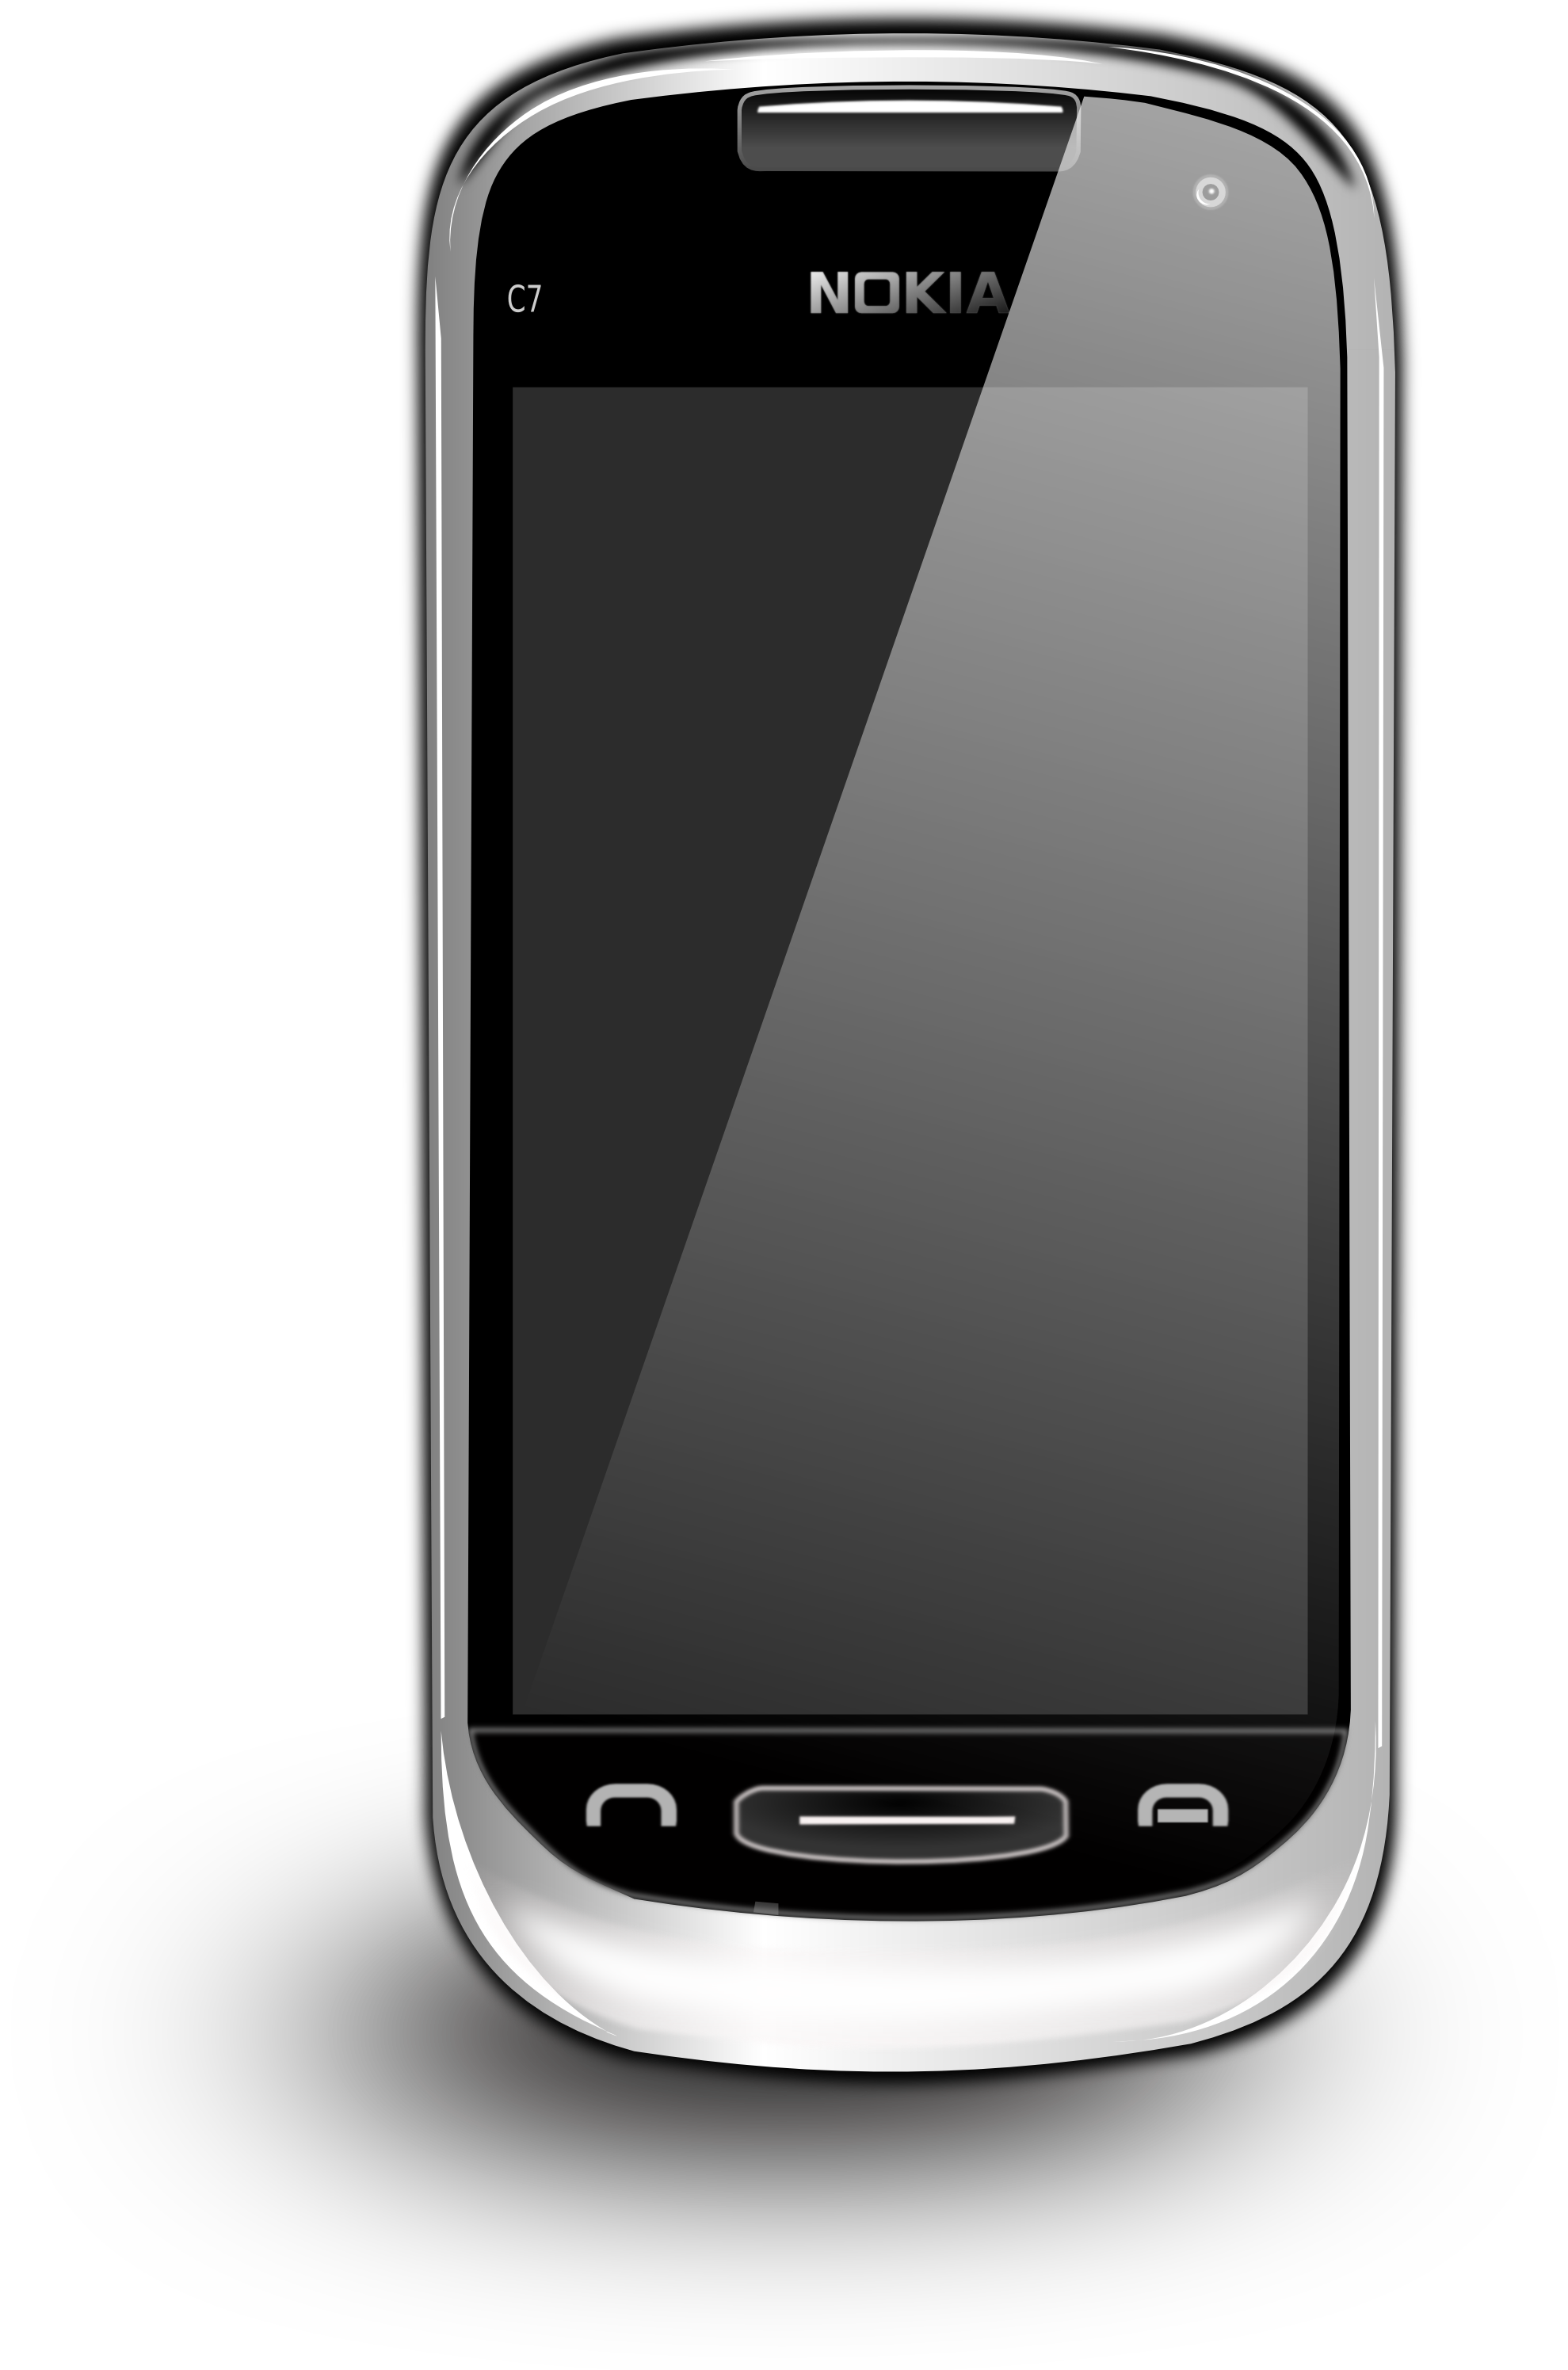 Phone. Icons For Android Phones Free. systemreviewbonus Electronic.